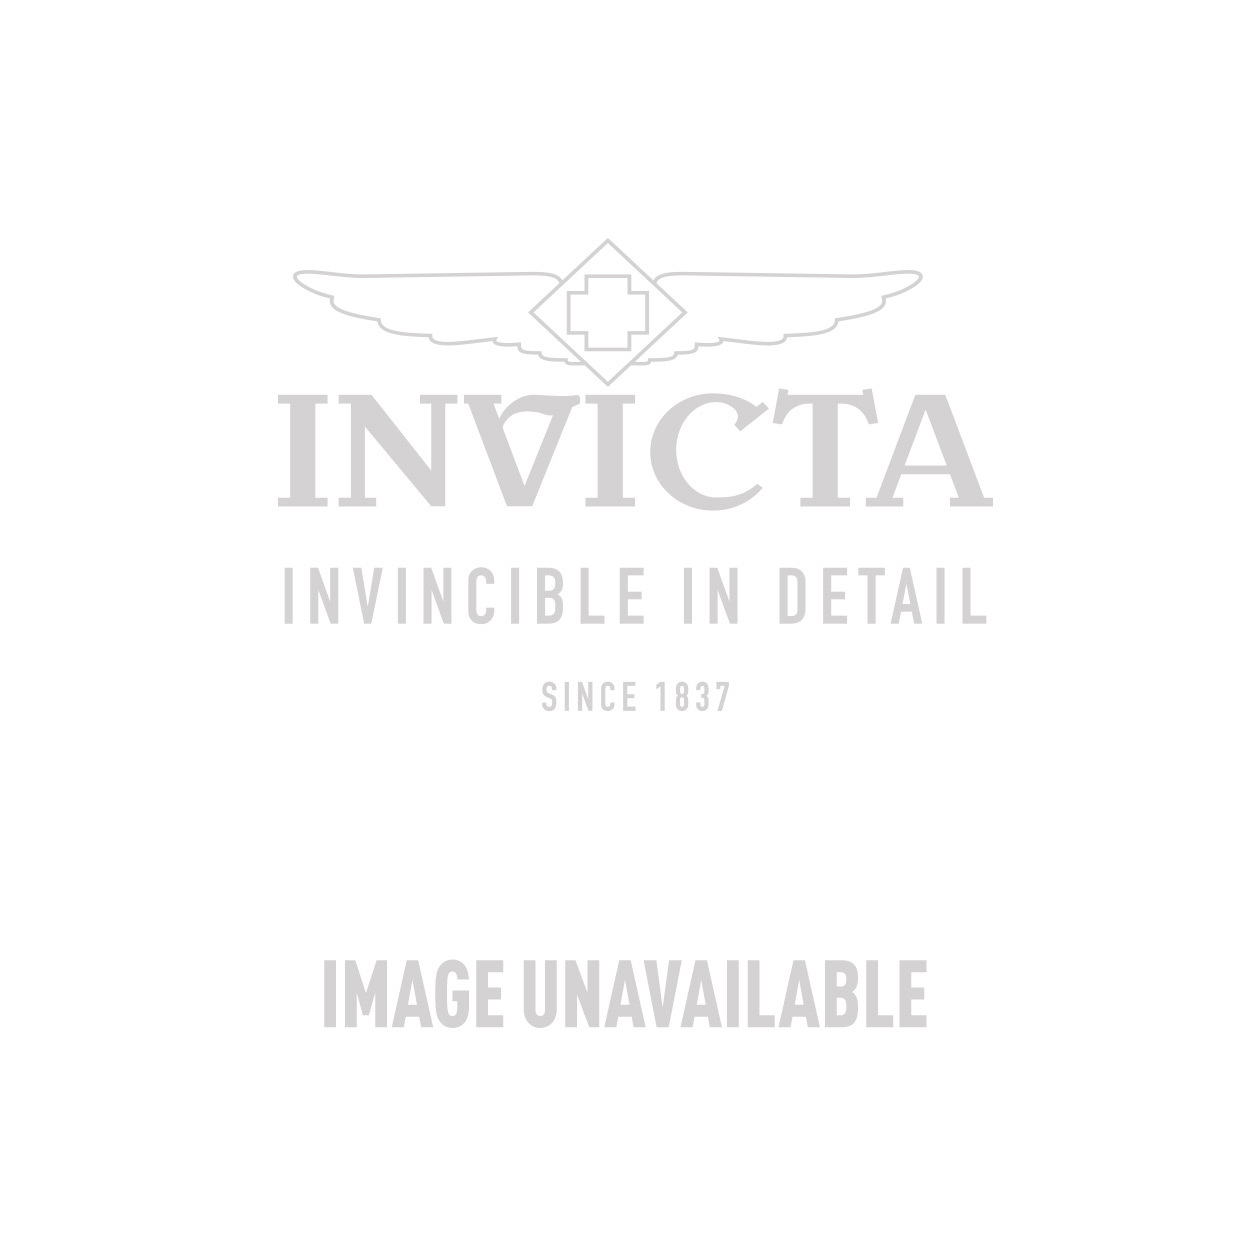 the v in the new or alternative invicta logo is nice. Black Bedroom Furniture Sets. Home Design Ideas